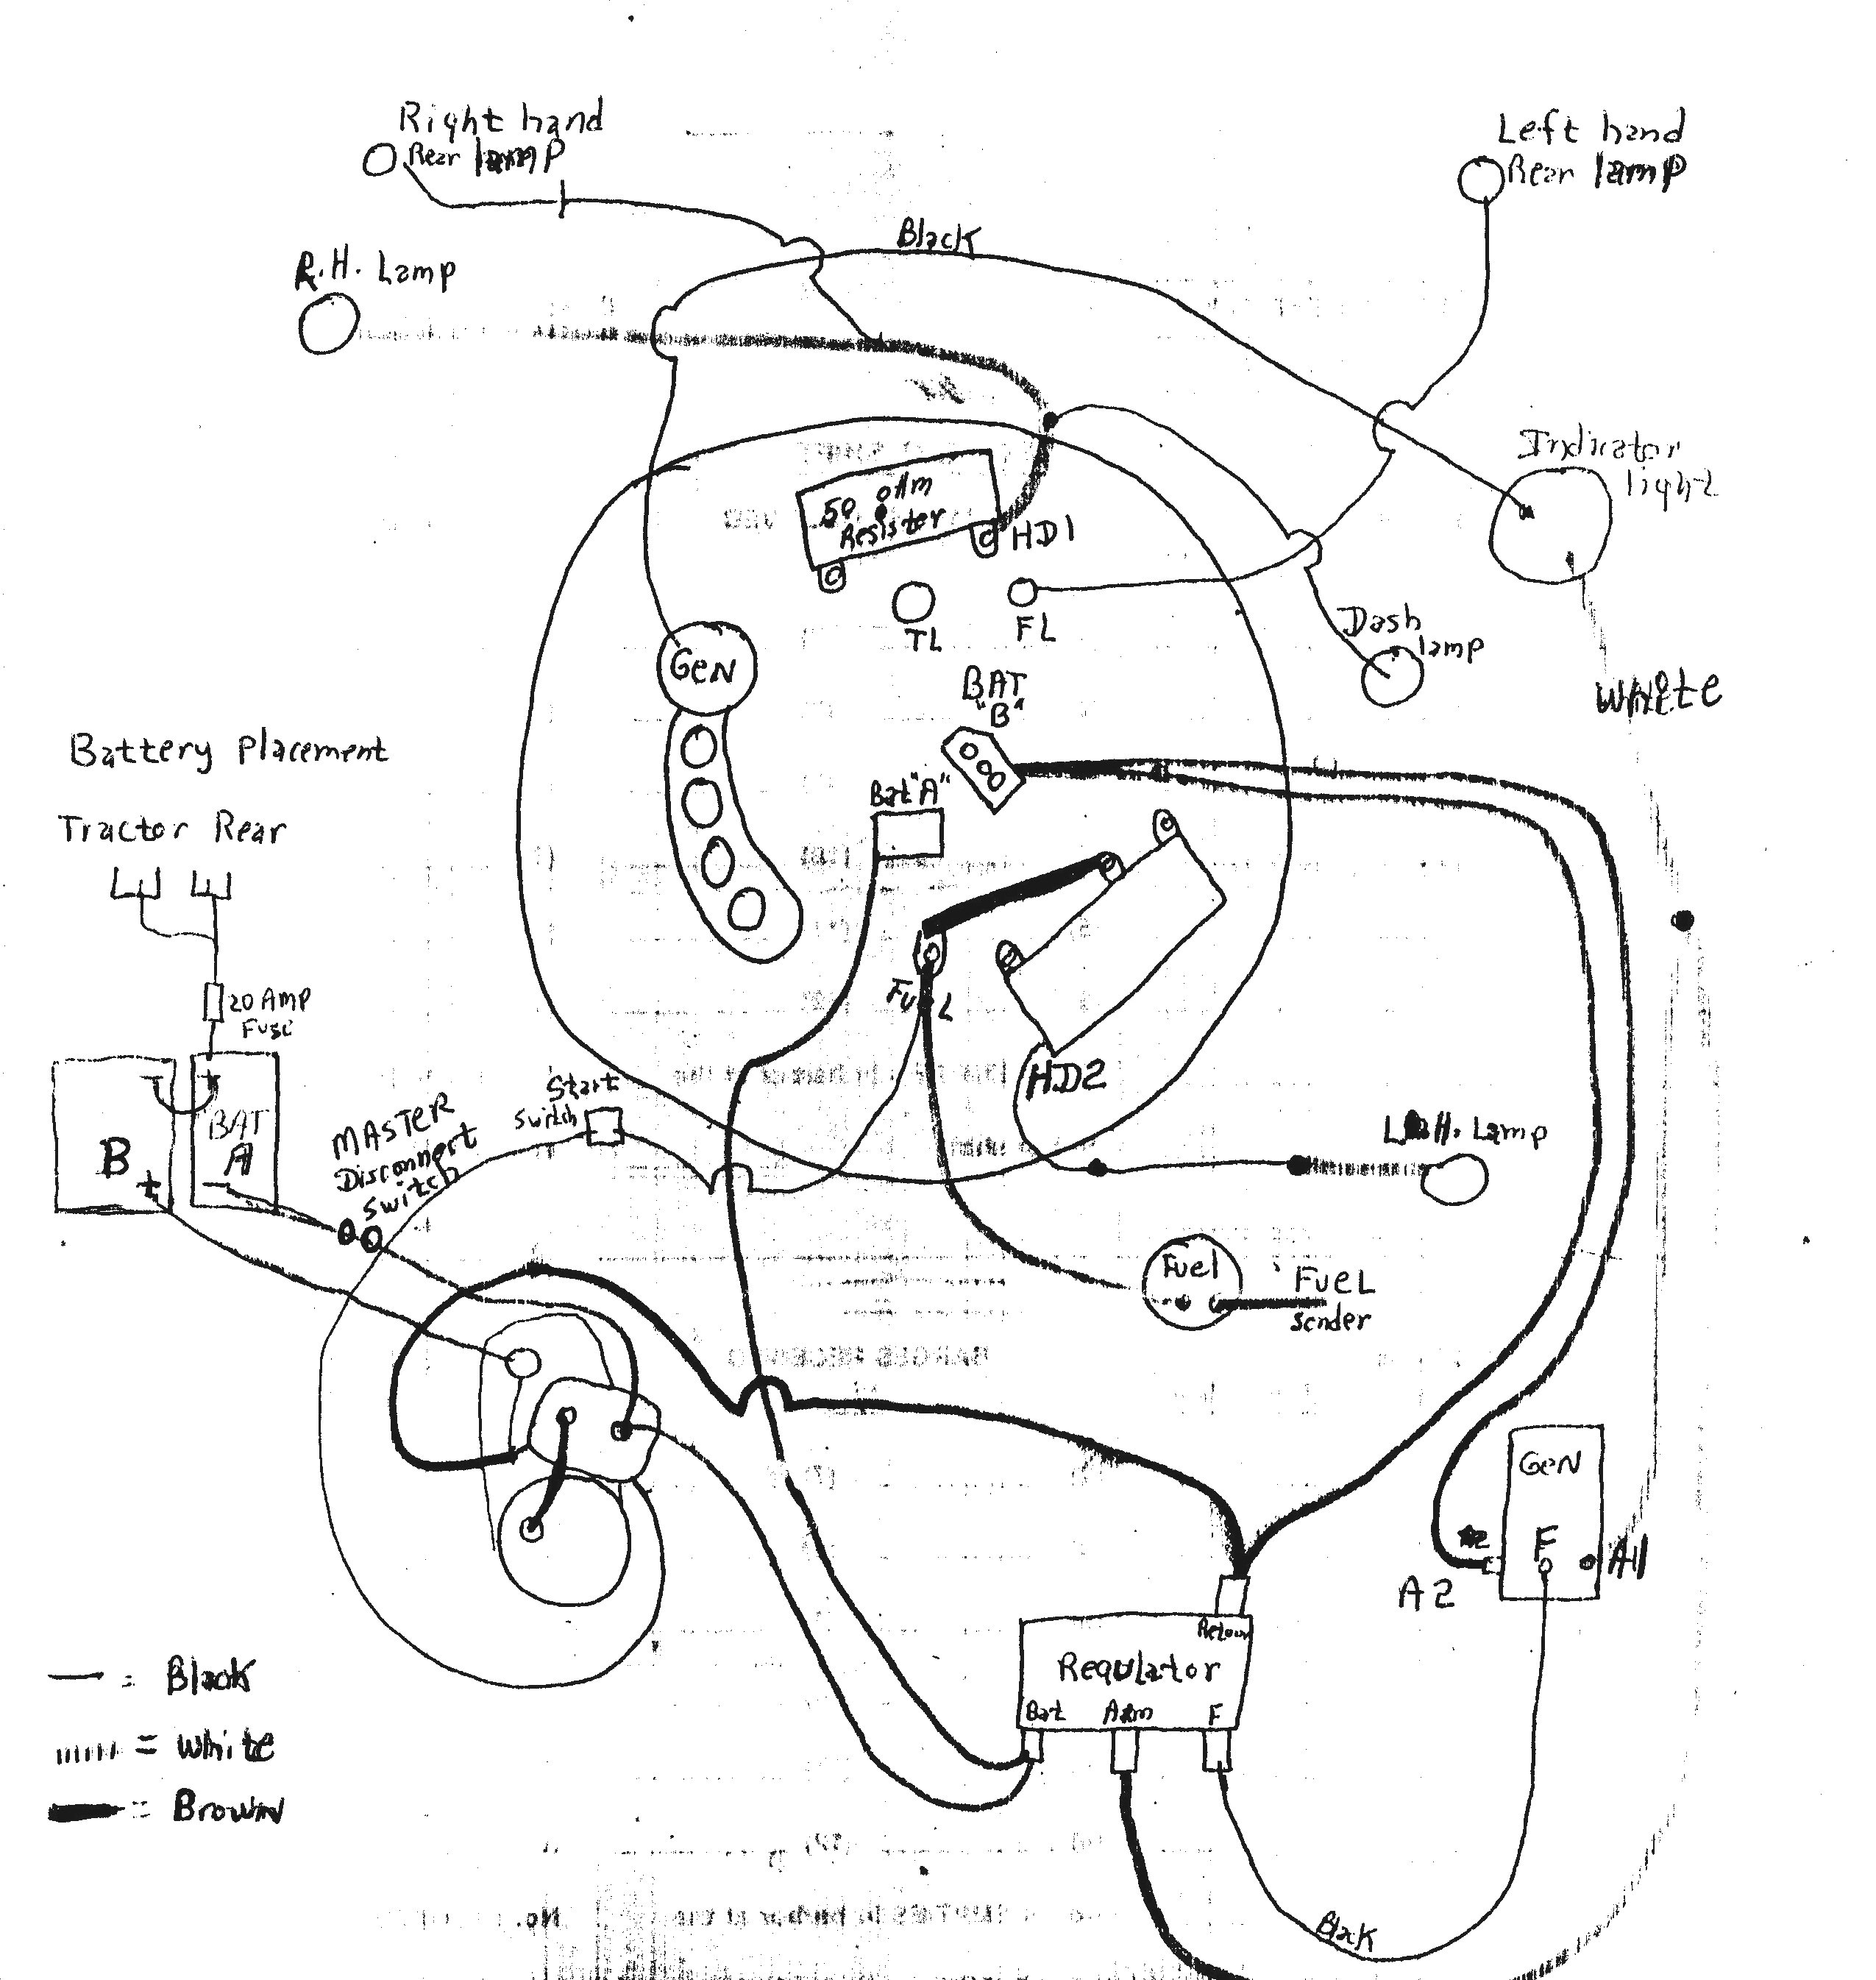 24volt_wiring_diagram wiring harness diagram 2755 john deere pic,2008 Mack Granite Wiring Harness